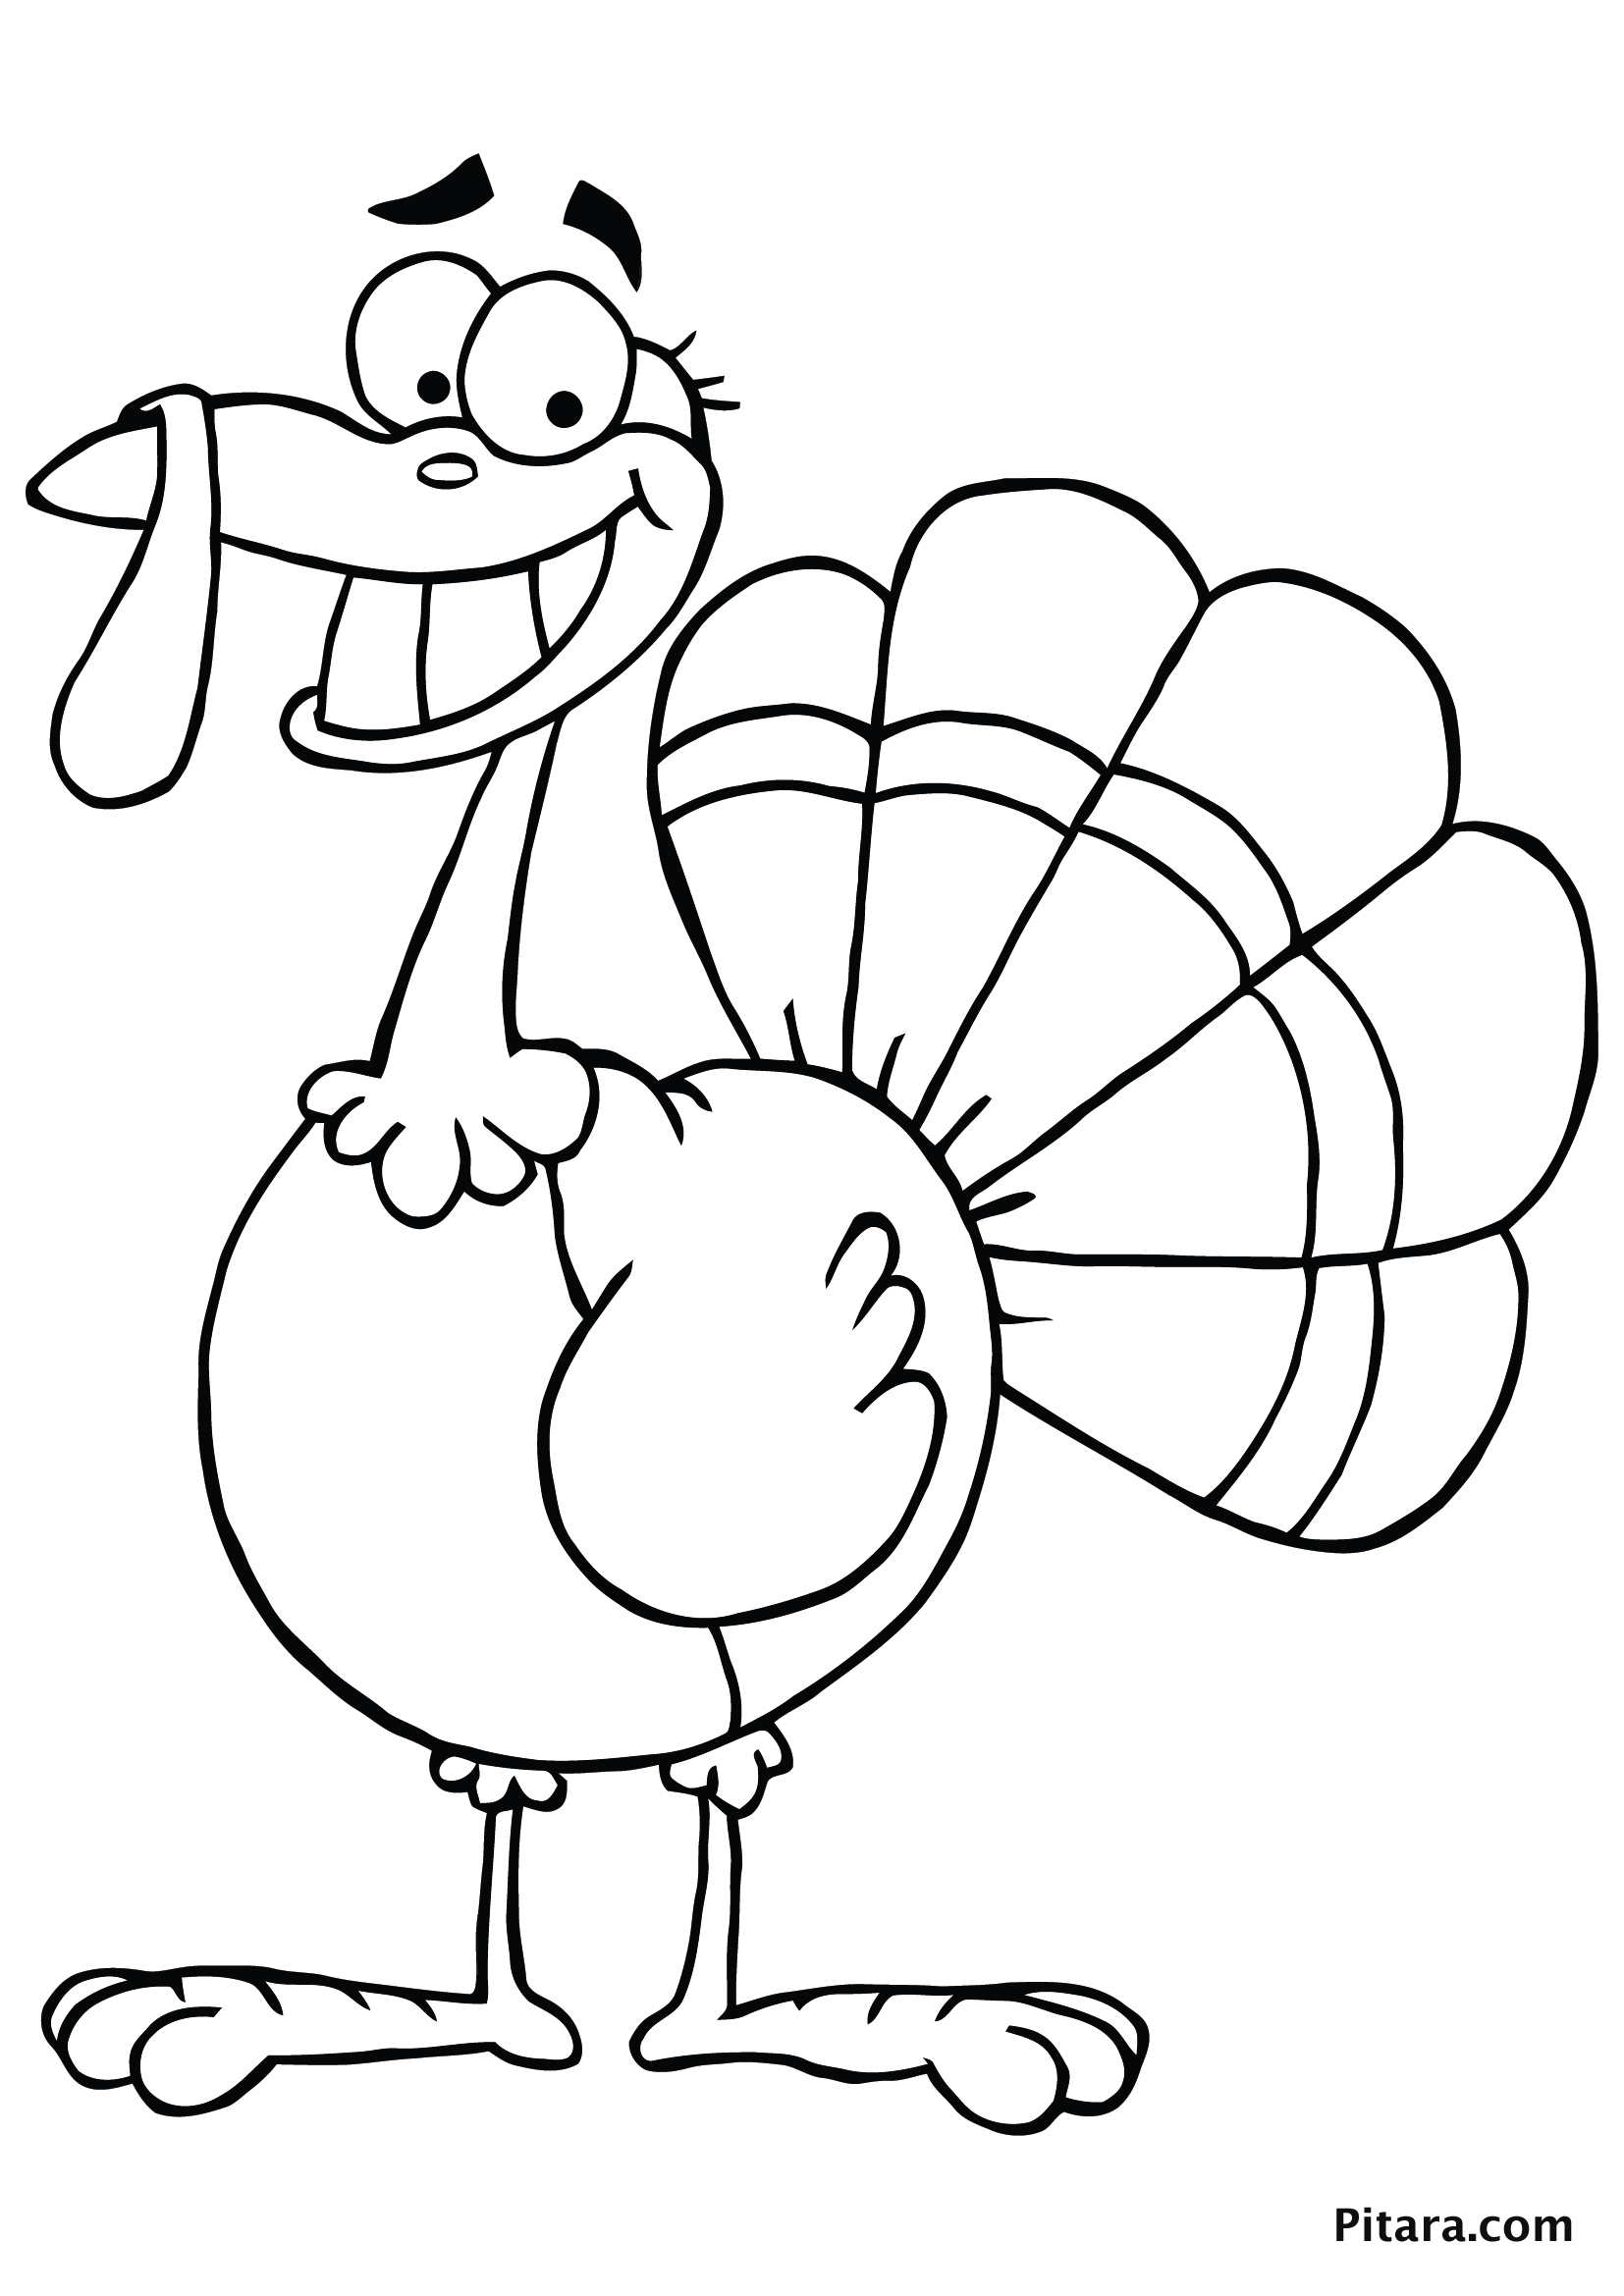 Cartoon Thanksgiving Coloring Pages At Getdrawings Com Free For